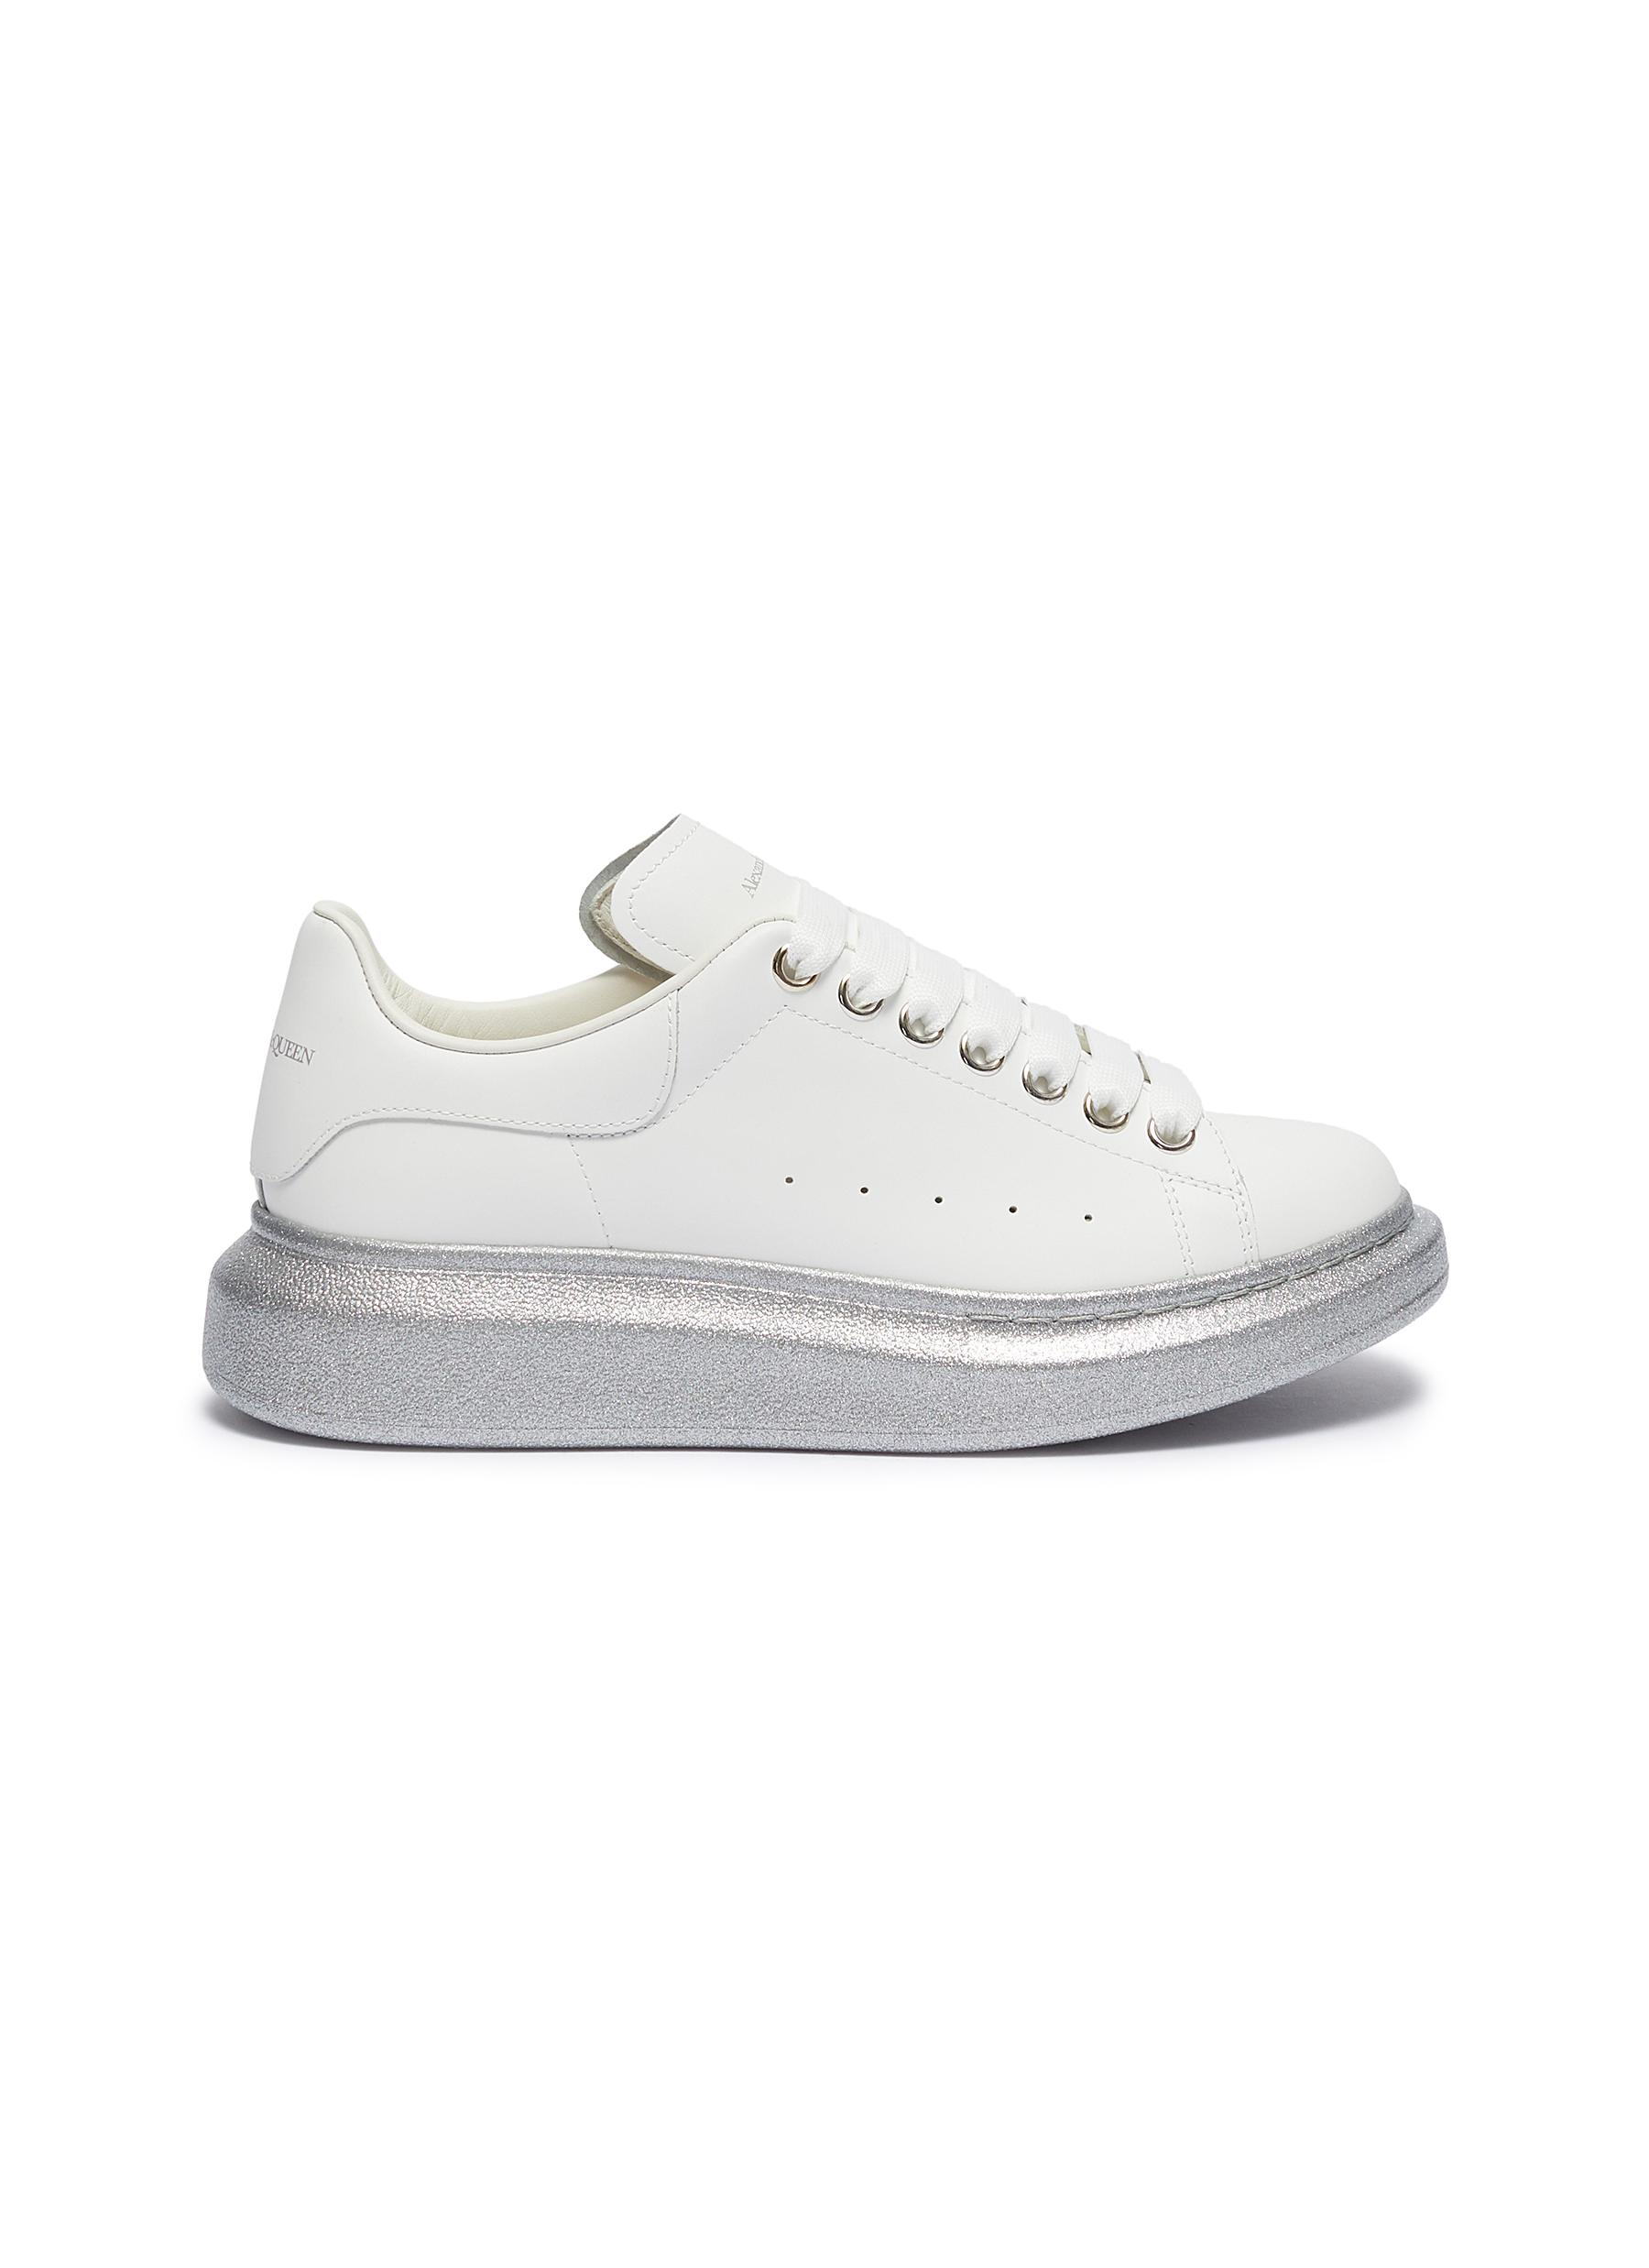 Oversized Sneaker in leather with glitter outsole by Alexander Mcqueen